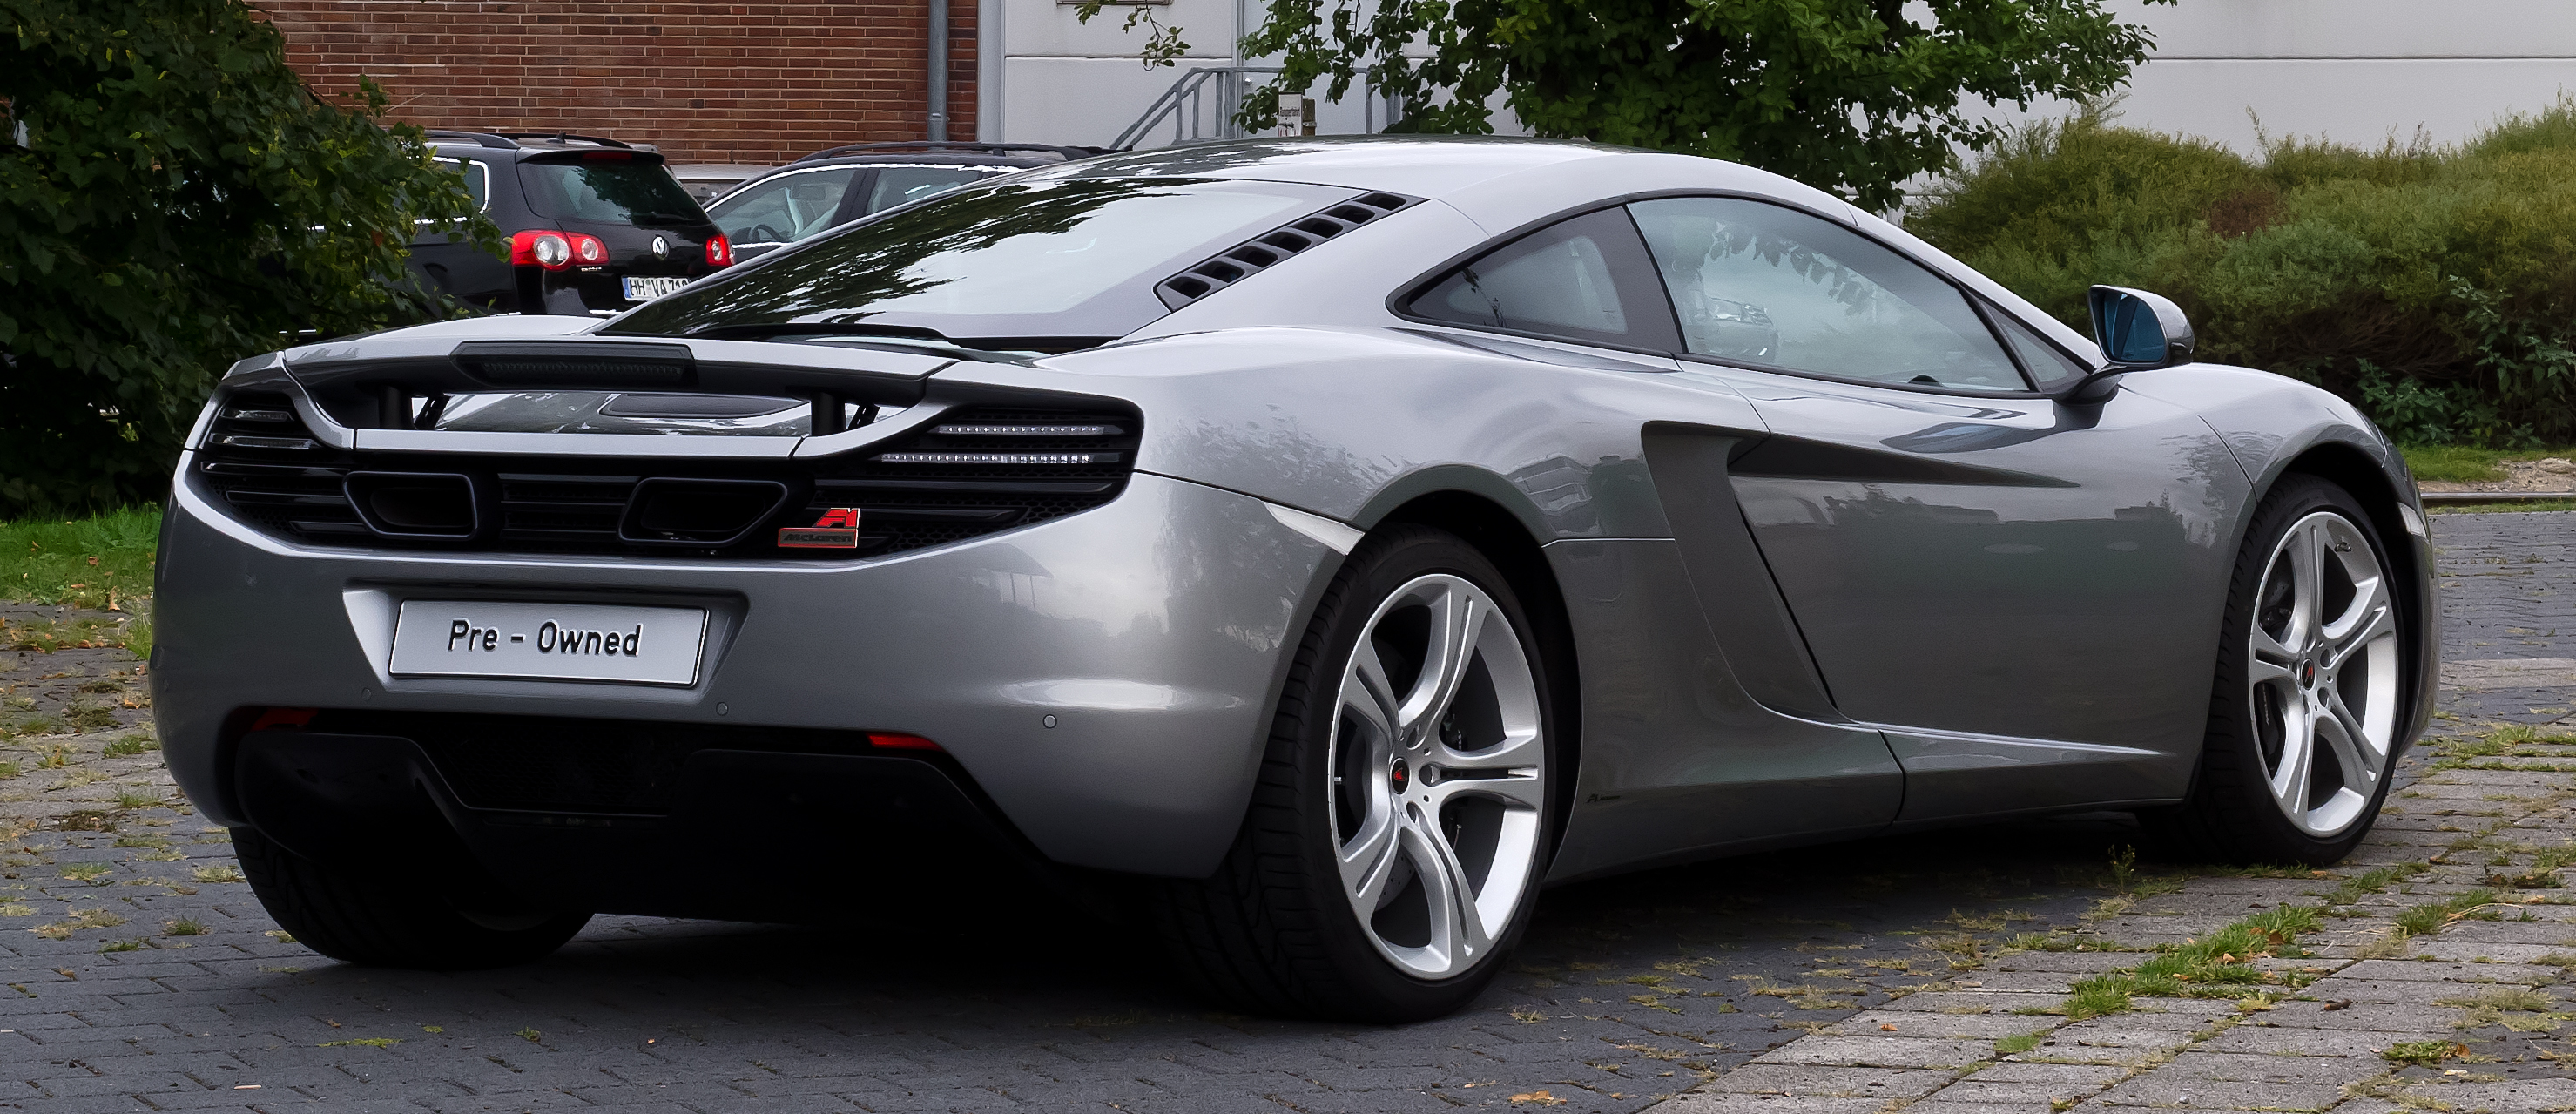 file mclaren mp4 12c heckansicht 2 30 august 2012 d wikimedia commons. Black Bedroom Furniture Sets. Home Design Ideas